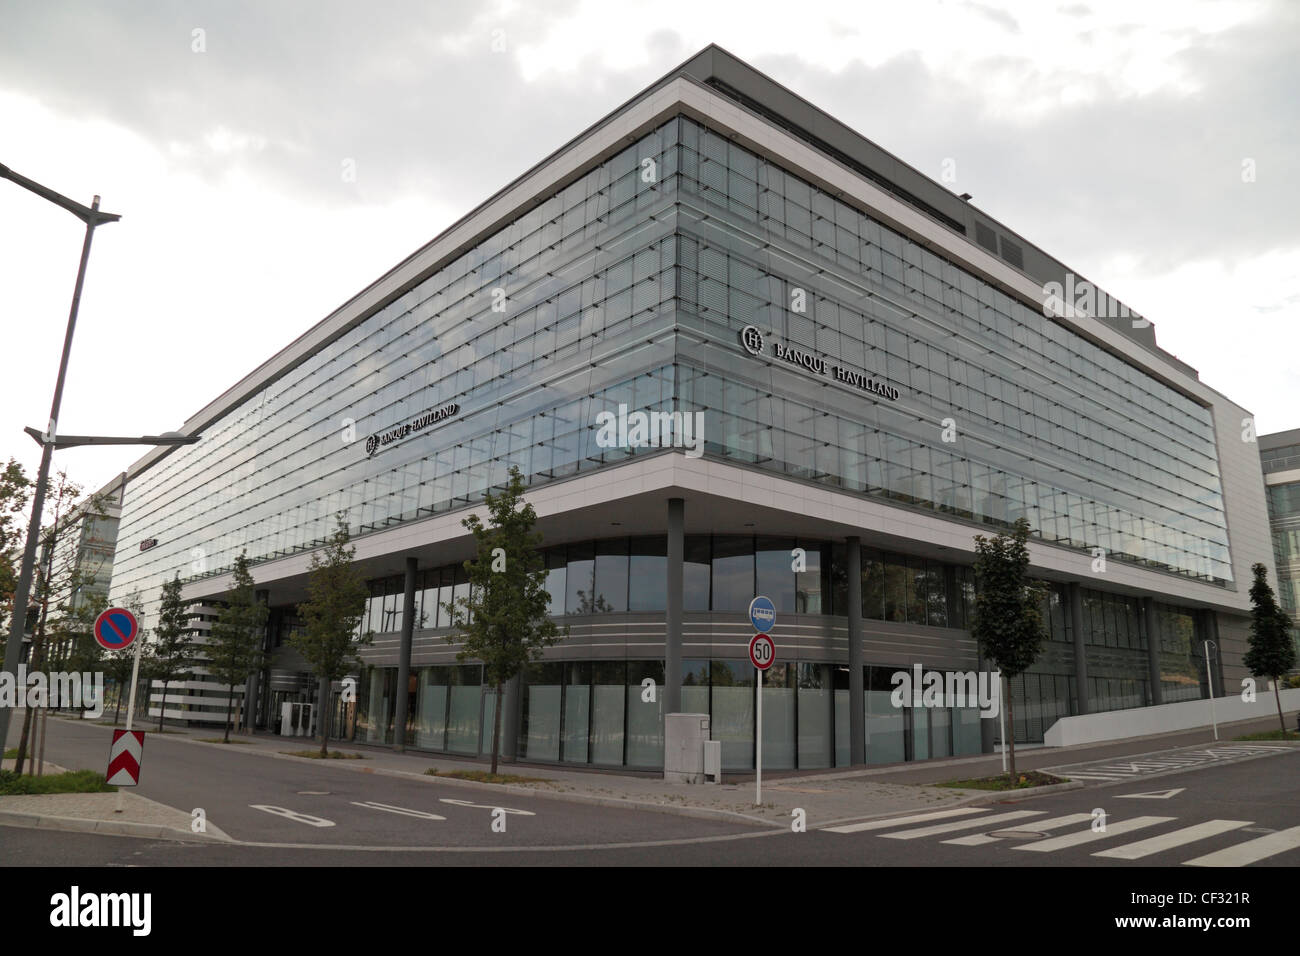 The 'Banque Havilland' loffices in Kirchberg, Luxembourg city, Luxembourg. - Stock Image